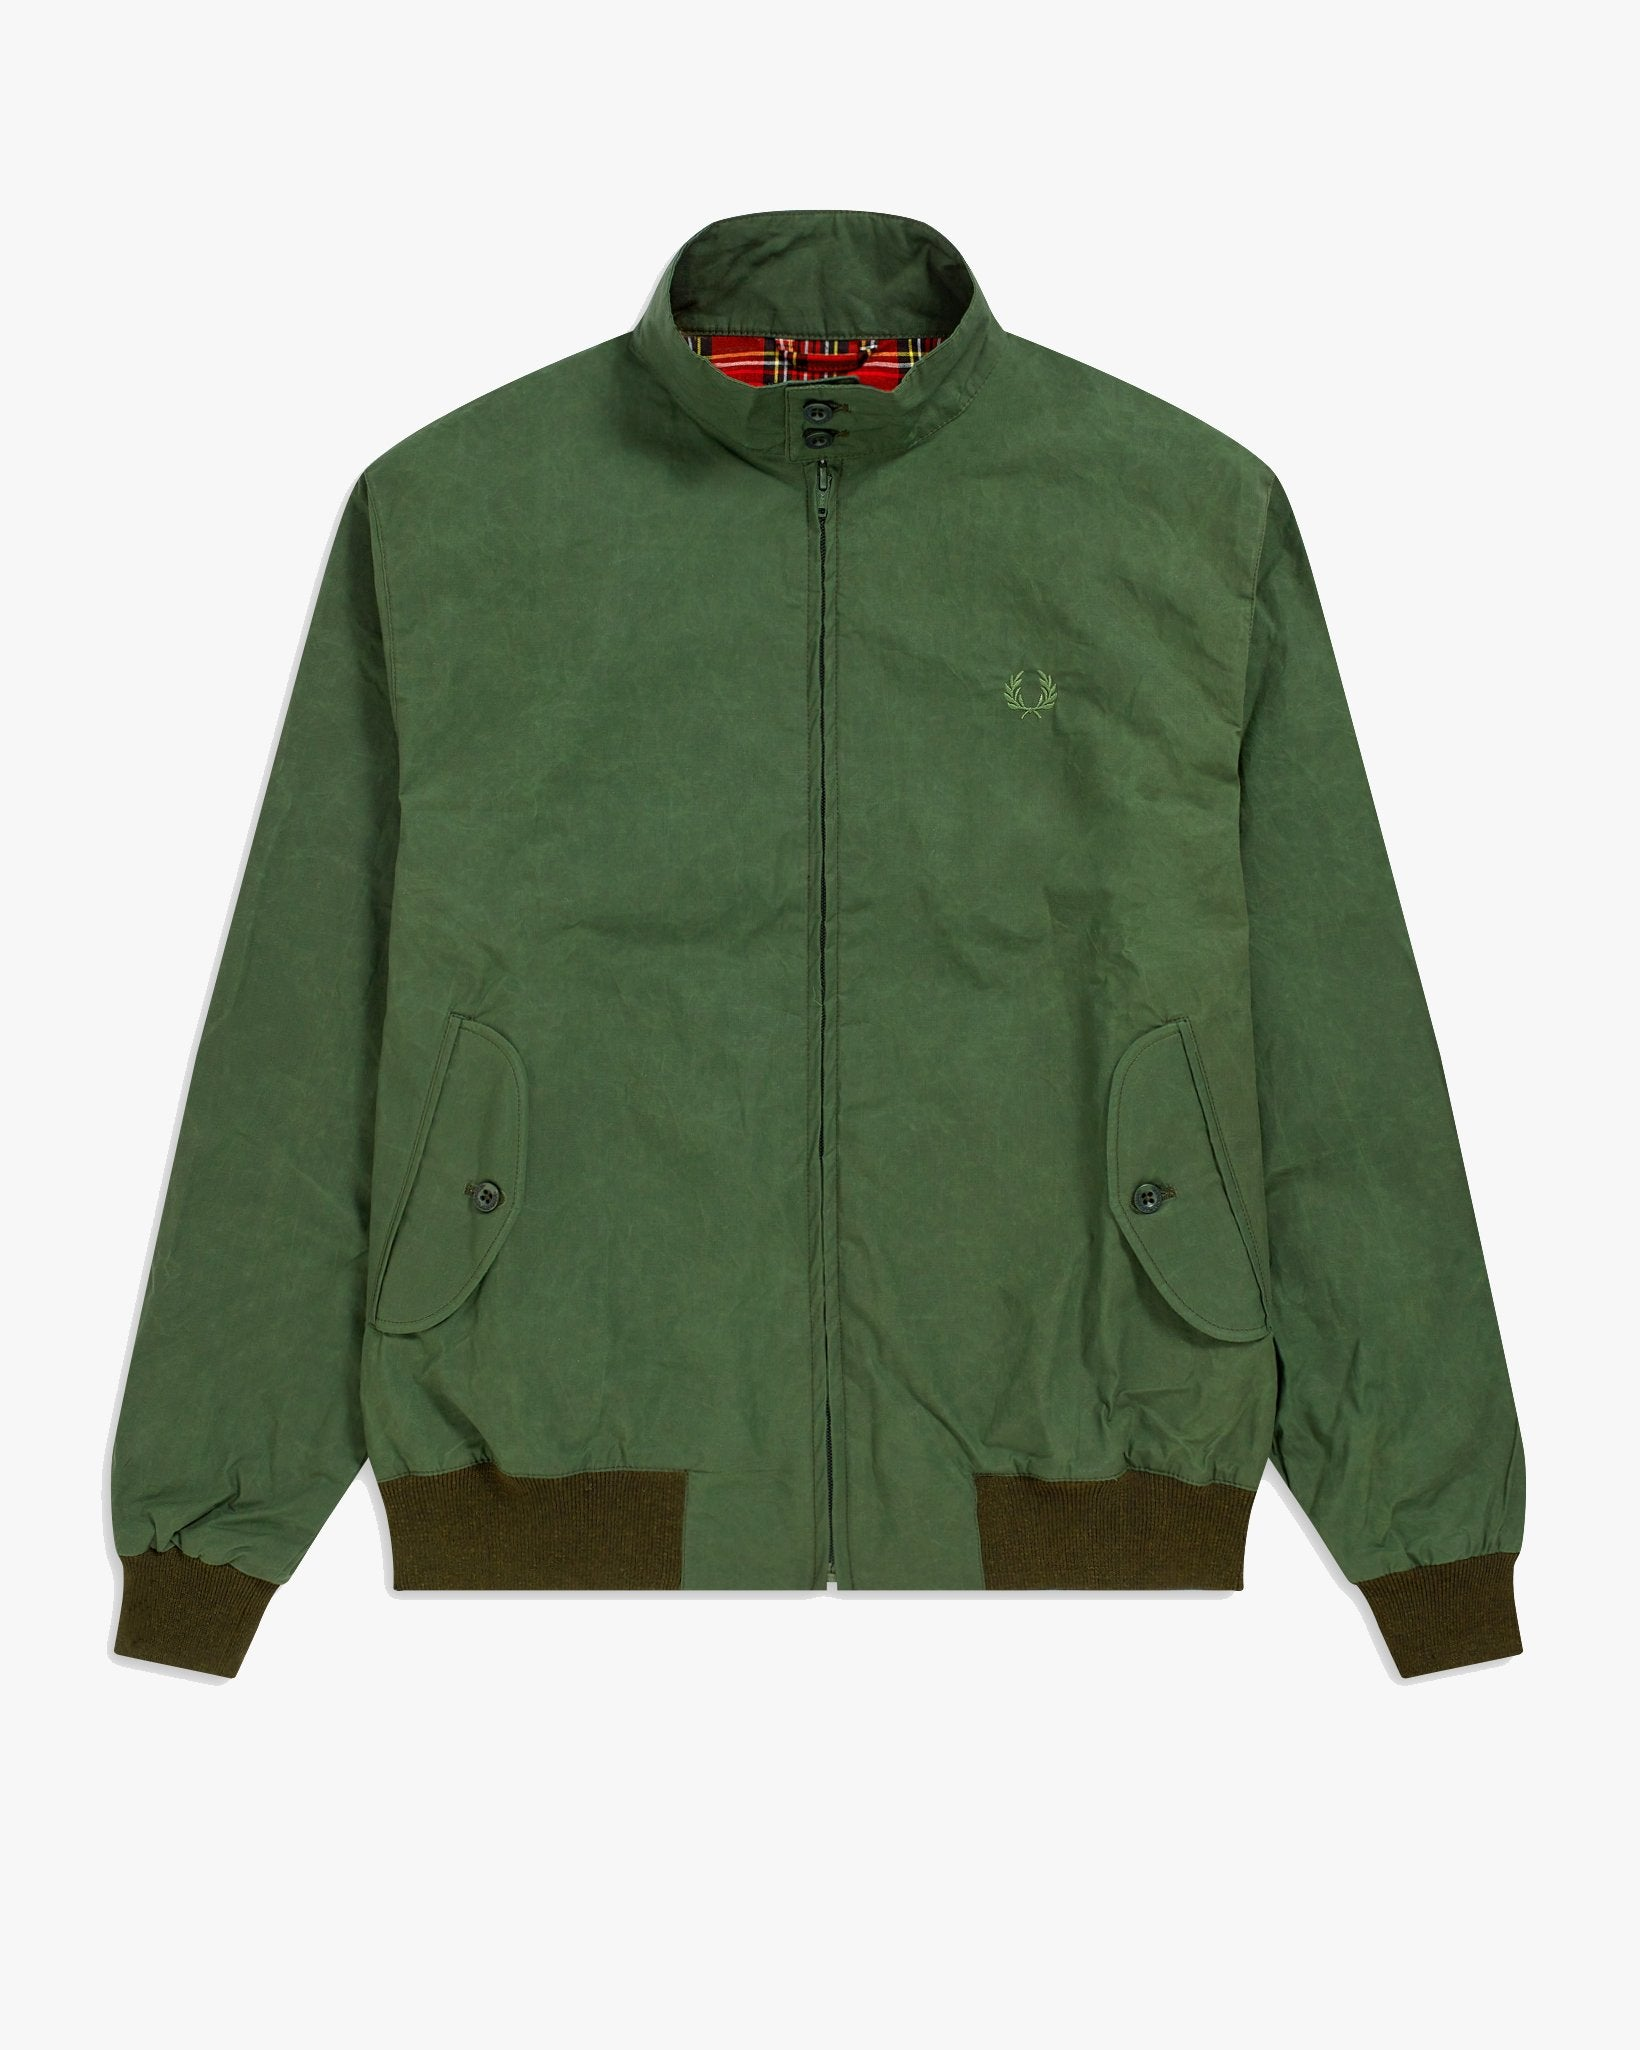 Fred Perry Made In England Waxed Harrington Jacket - Dark Fern M J9800D65M 5034605829112 Fred Perry Jackets & Coats